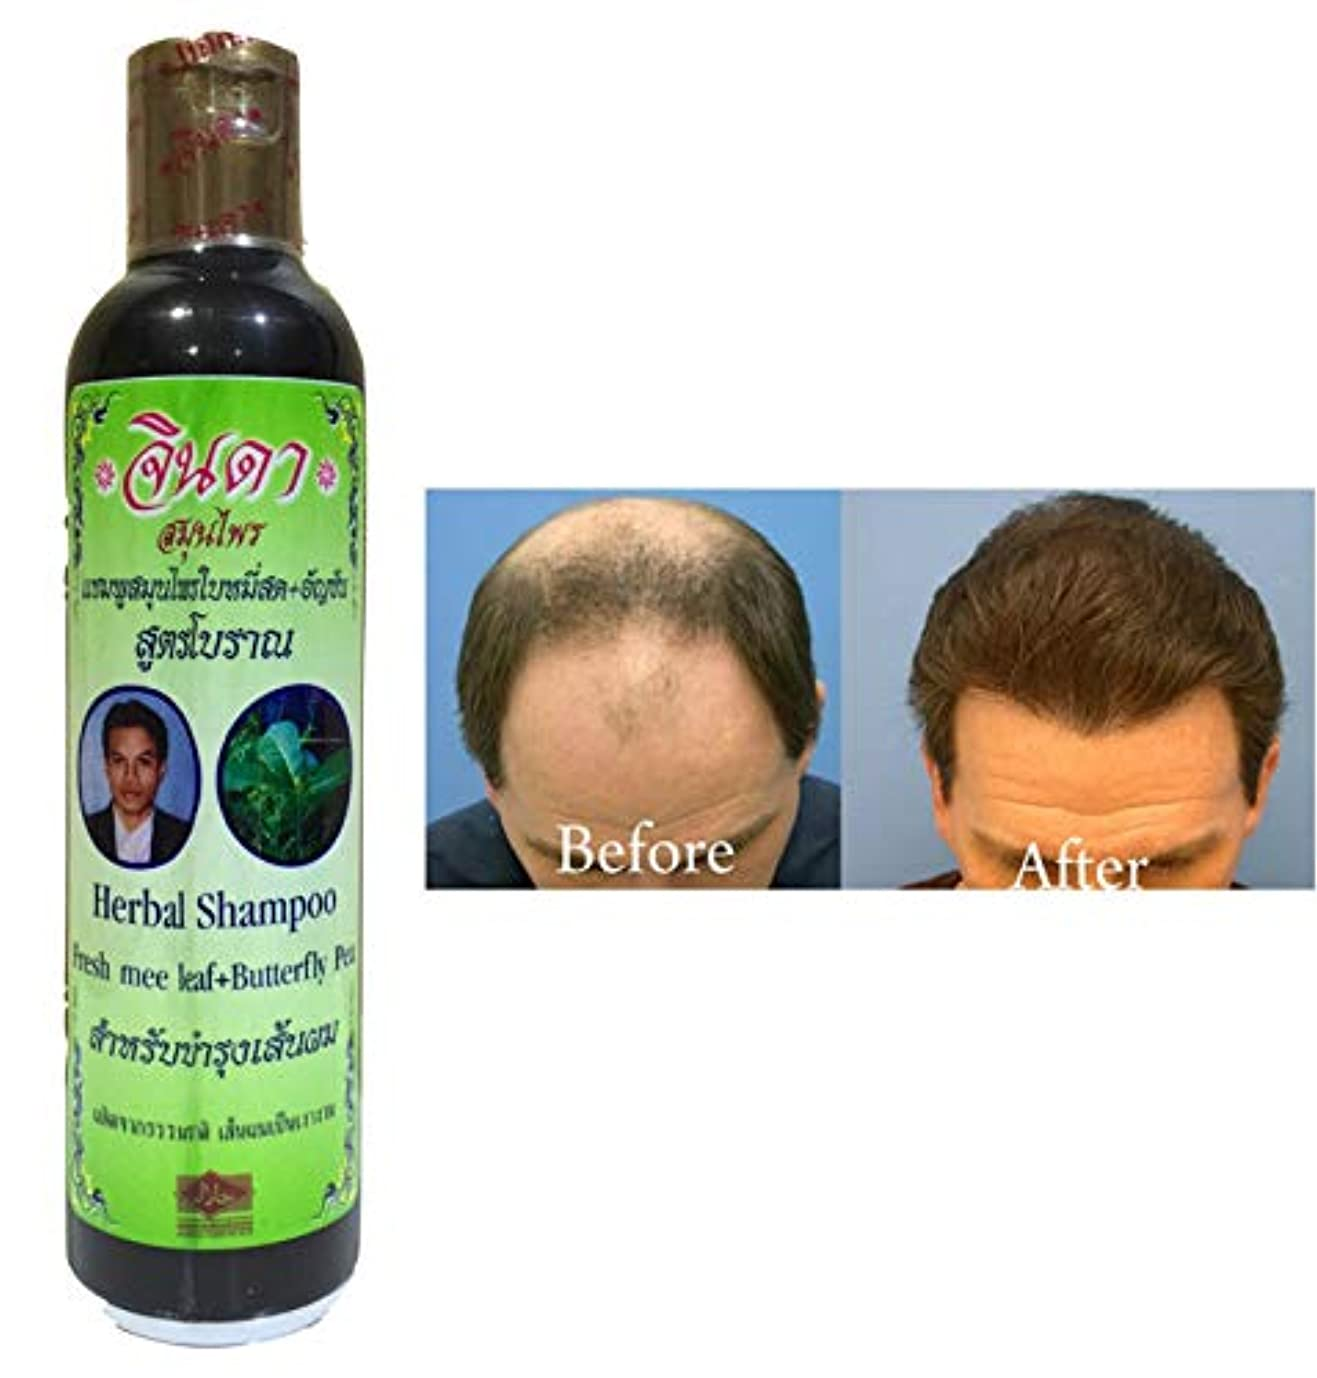 NEW CHOICE: Jinda Herbal shampoo anti hair fall for men 250 ml.(fresh mee leaf+butterfly pea) Good products in...